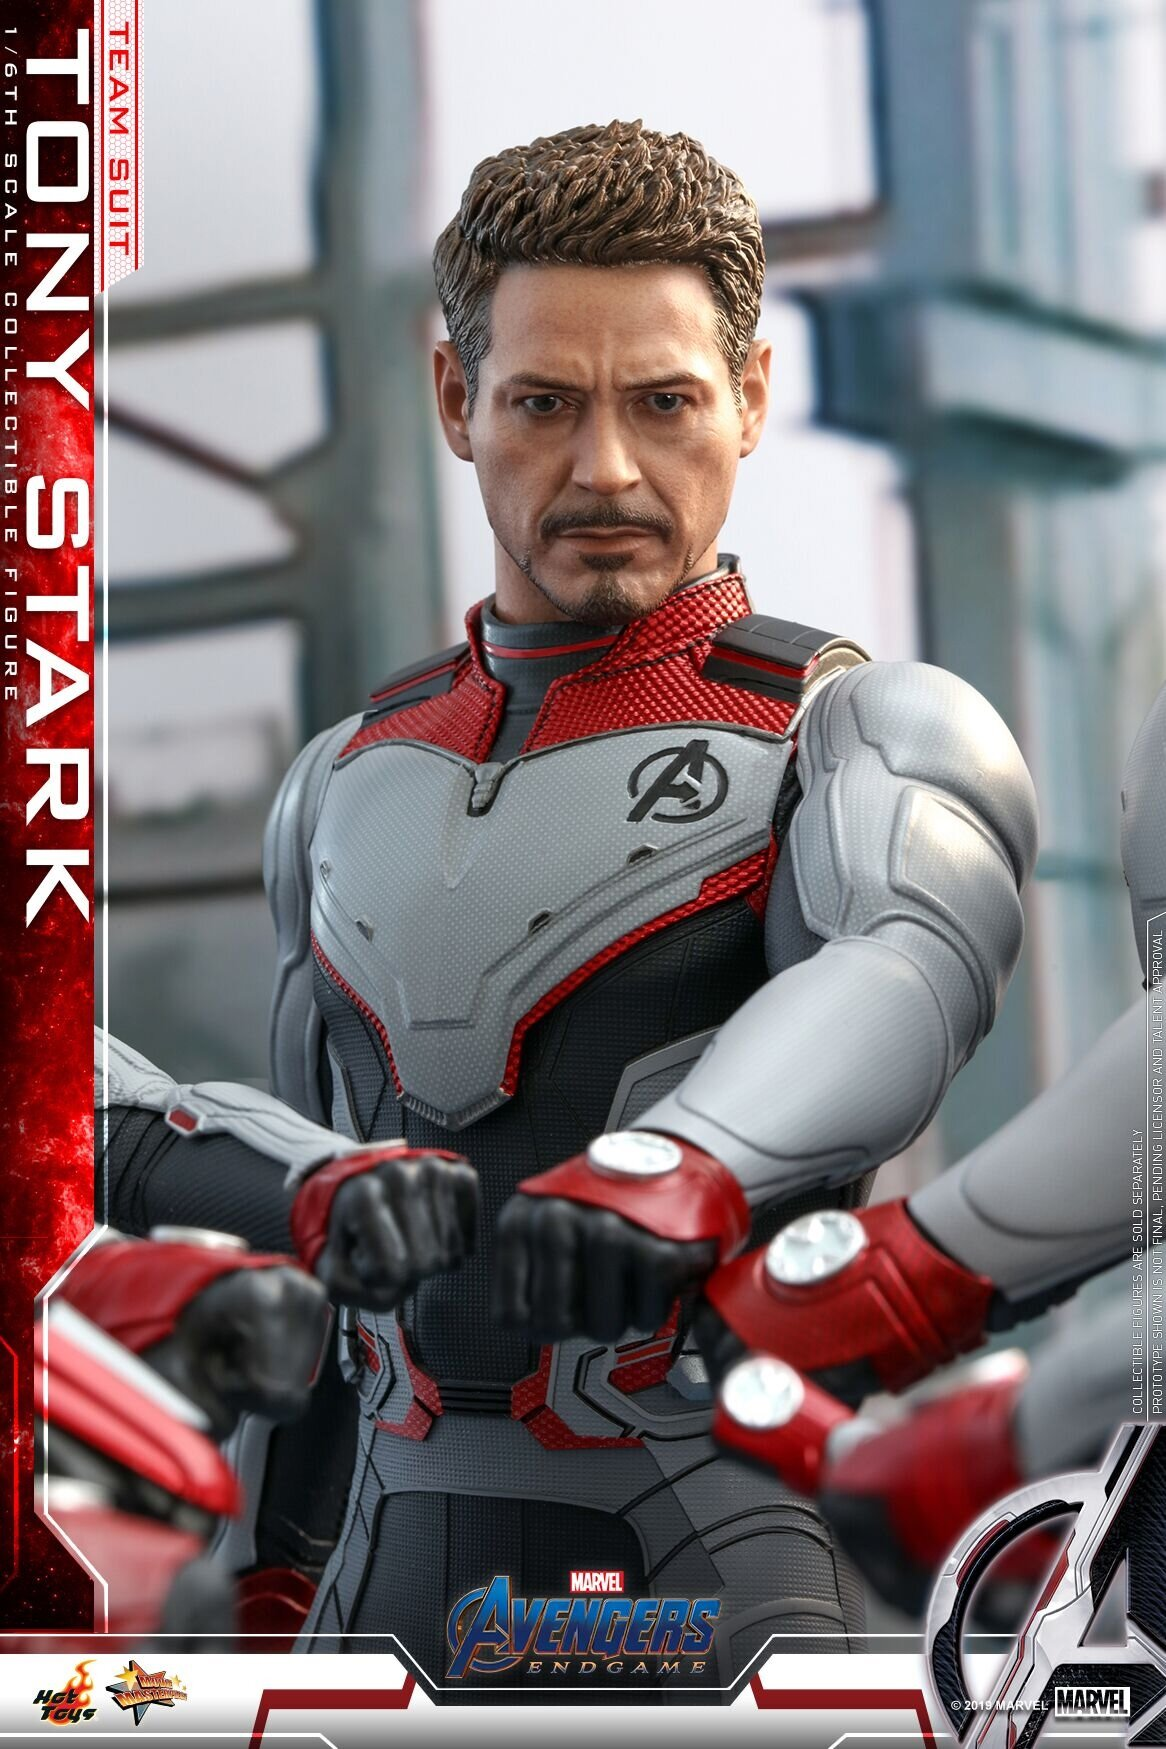 [Hot Toys] 어벤져스 : 엔드게임 토니스타크 팀수트 에디션 MMS537 1/6th scale Tony Stark (Team Suit) Collectible Figure